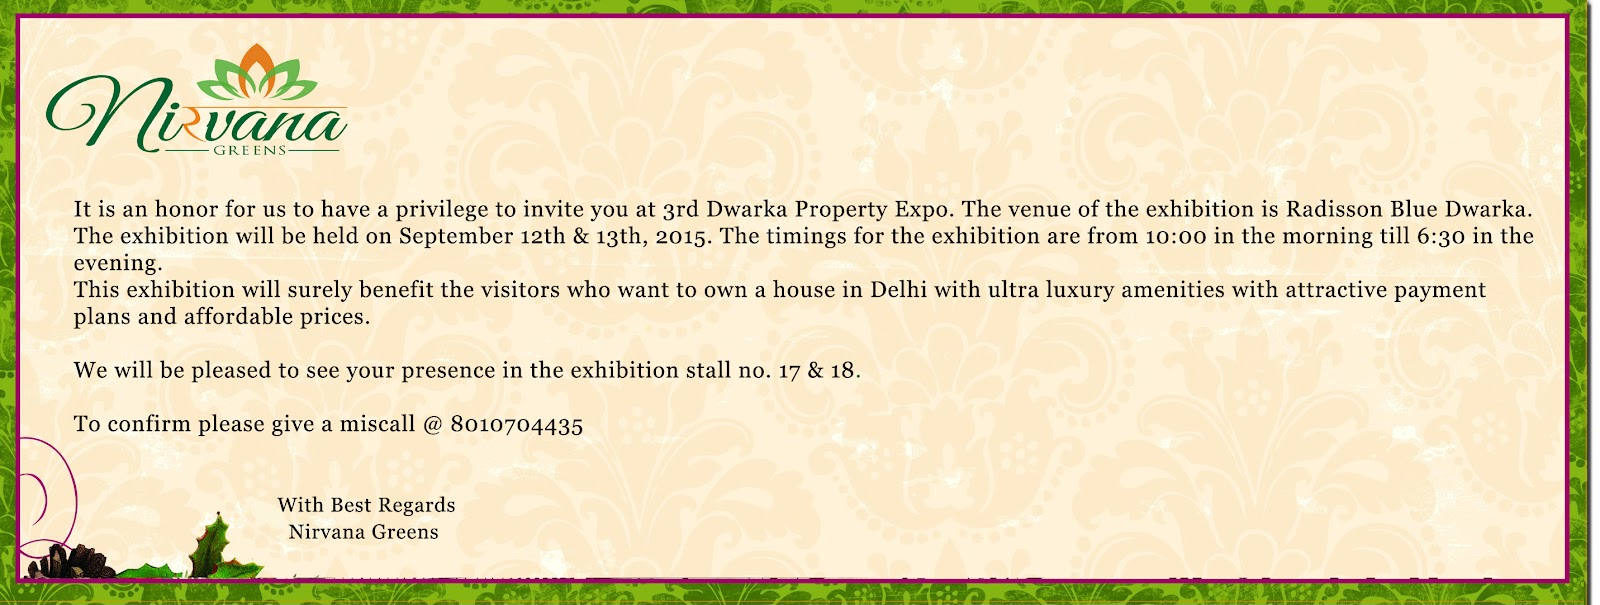 Invitation for 3rd largest property expo in radisson blue dwarka nirvana greens stopboris Choice Image